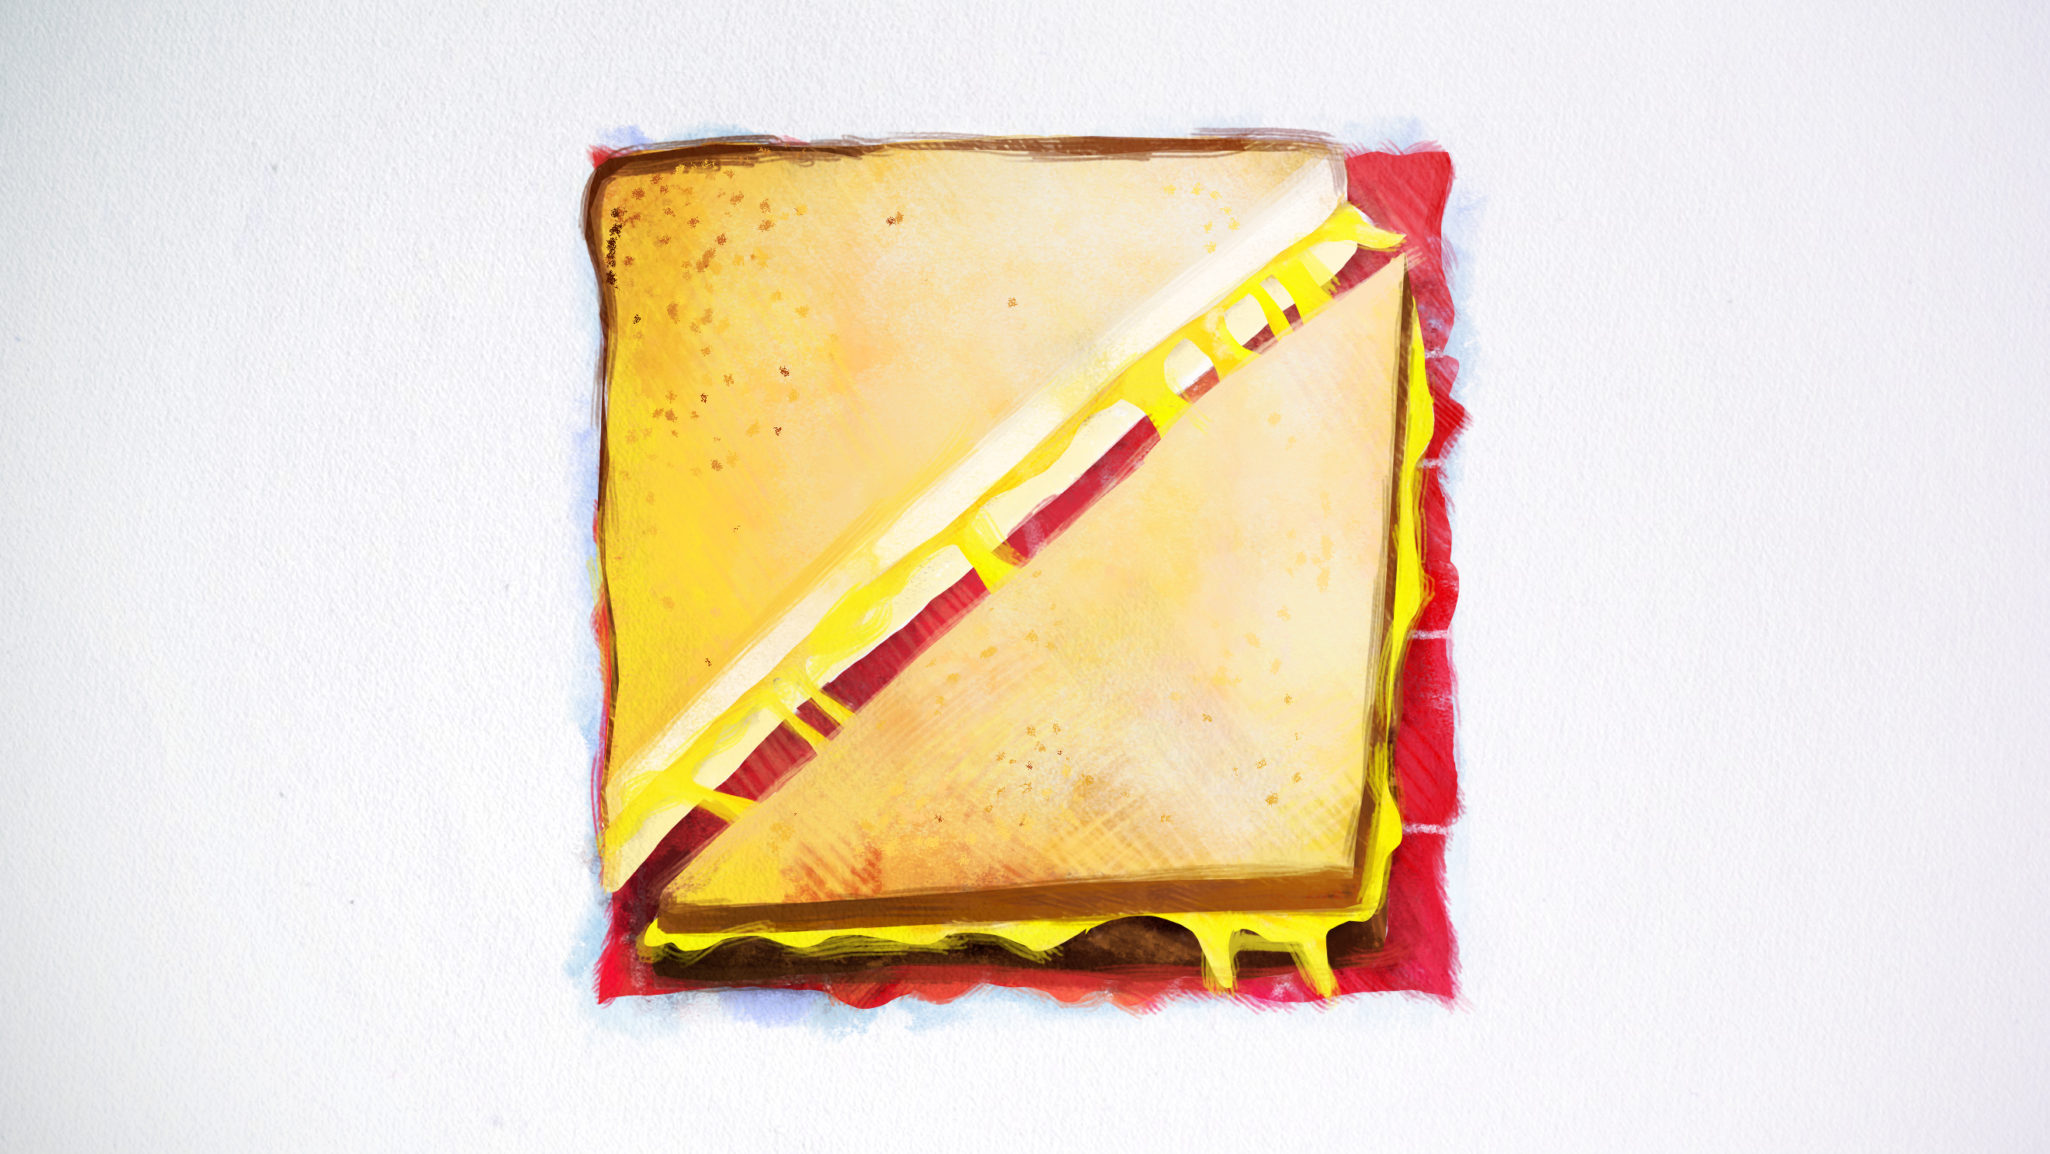 Styleframe hand painted: Cheese sandwich